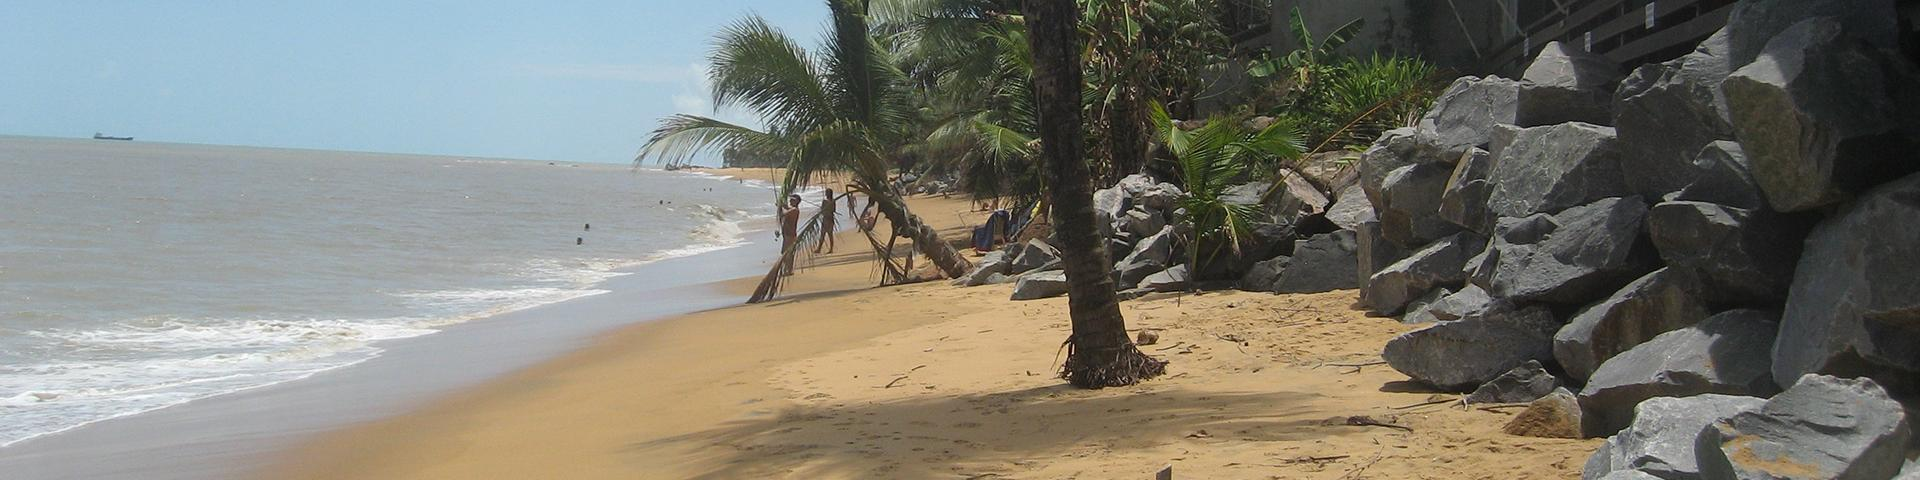 View of coastal erosion along the beaches at Rémire-Montjoly, French Guiana